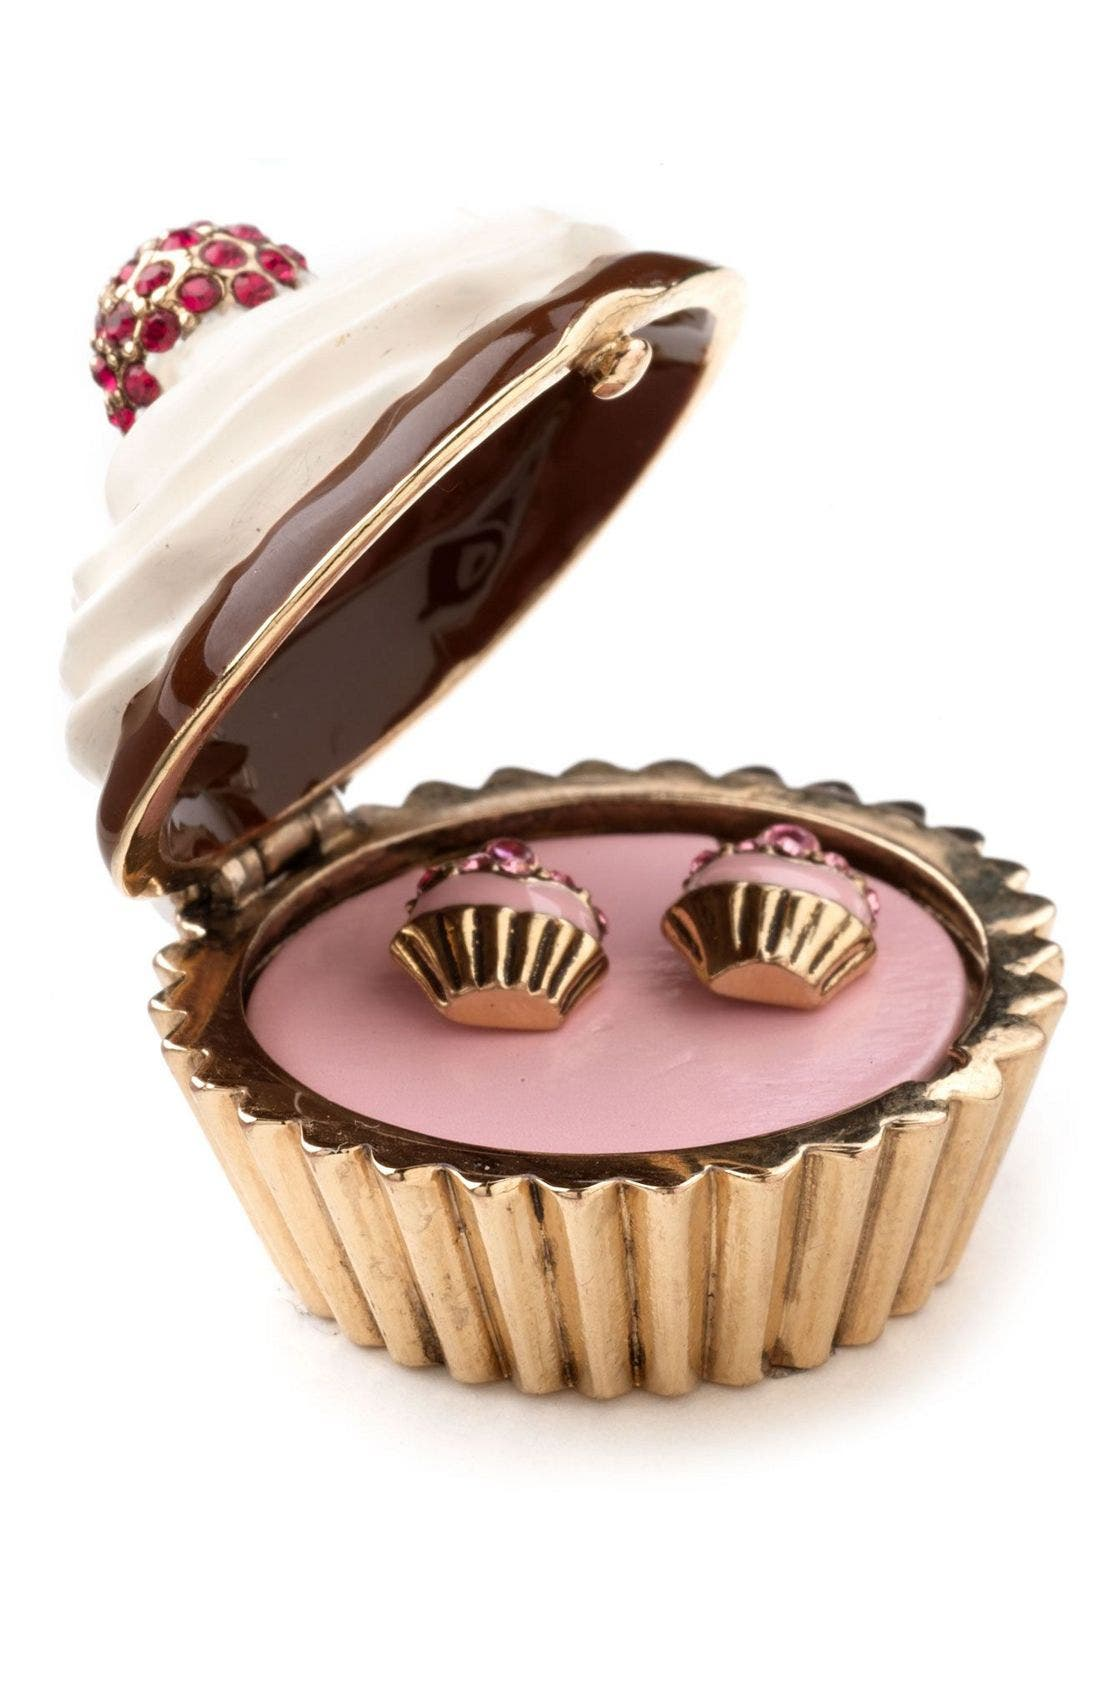 Main Image - Juicy Couture 'Puff' Earrings & Jewelry Box